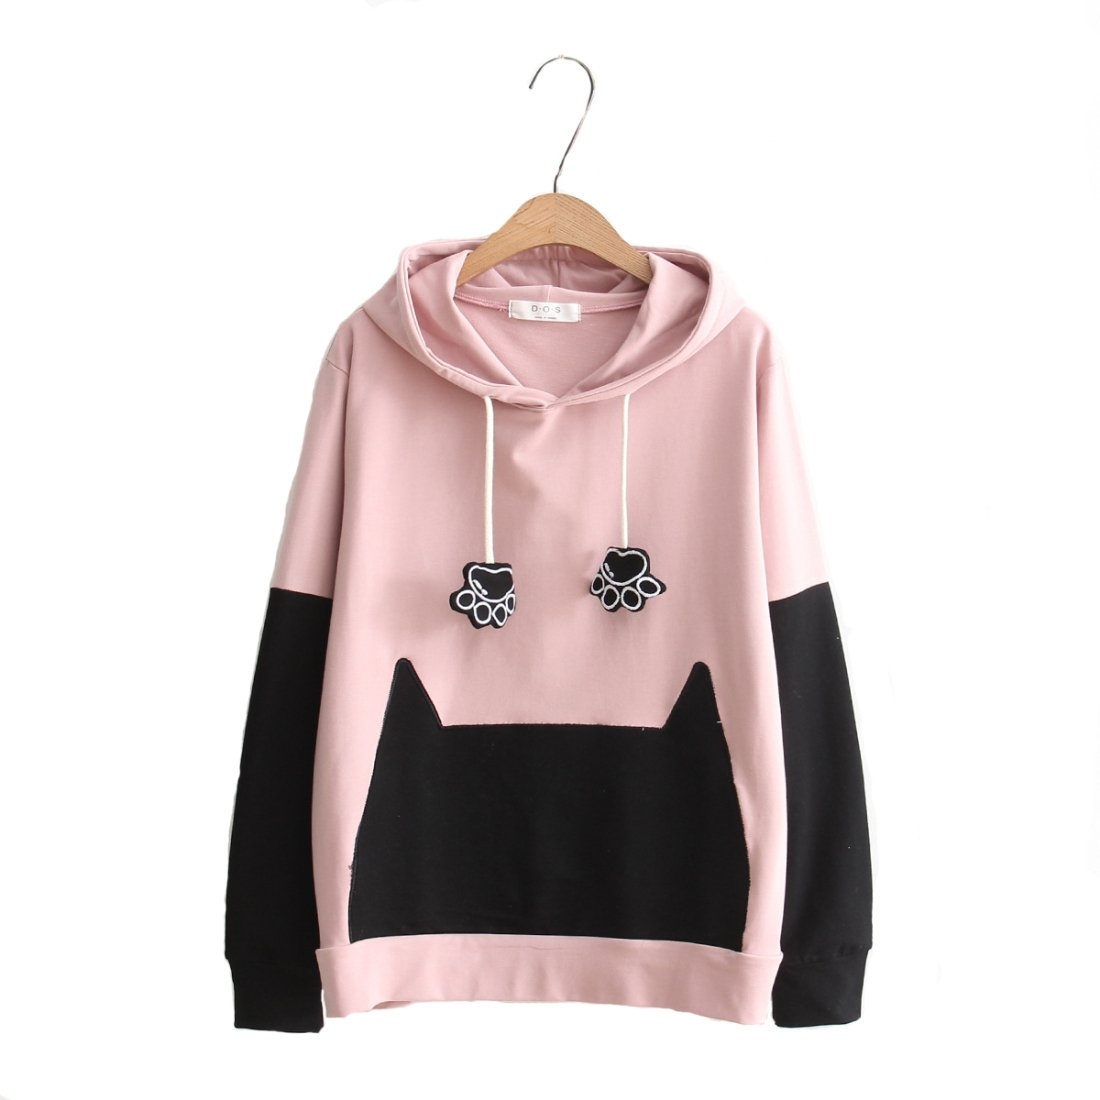 Cat_paw_hoodie_pink Aza Boutique Women's Cute Button Down Tweed Cat Ears Hoodie